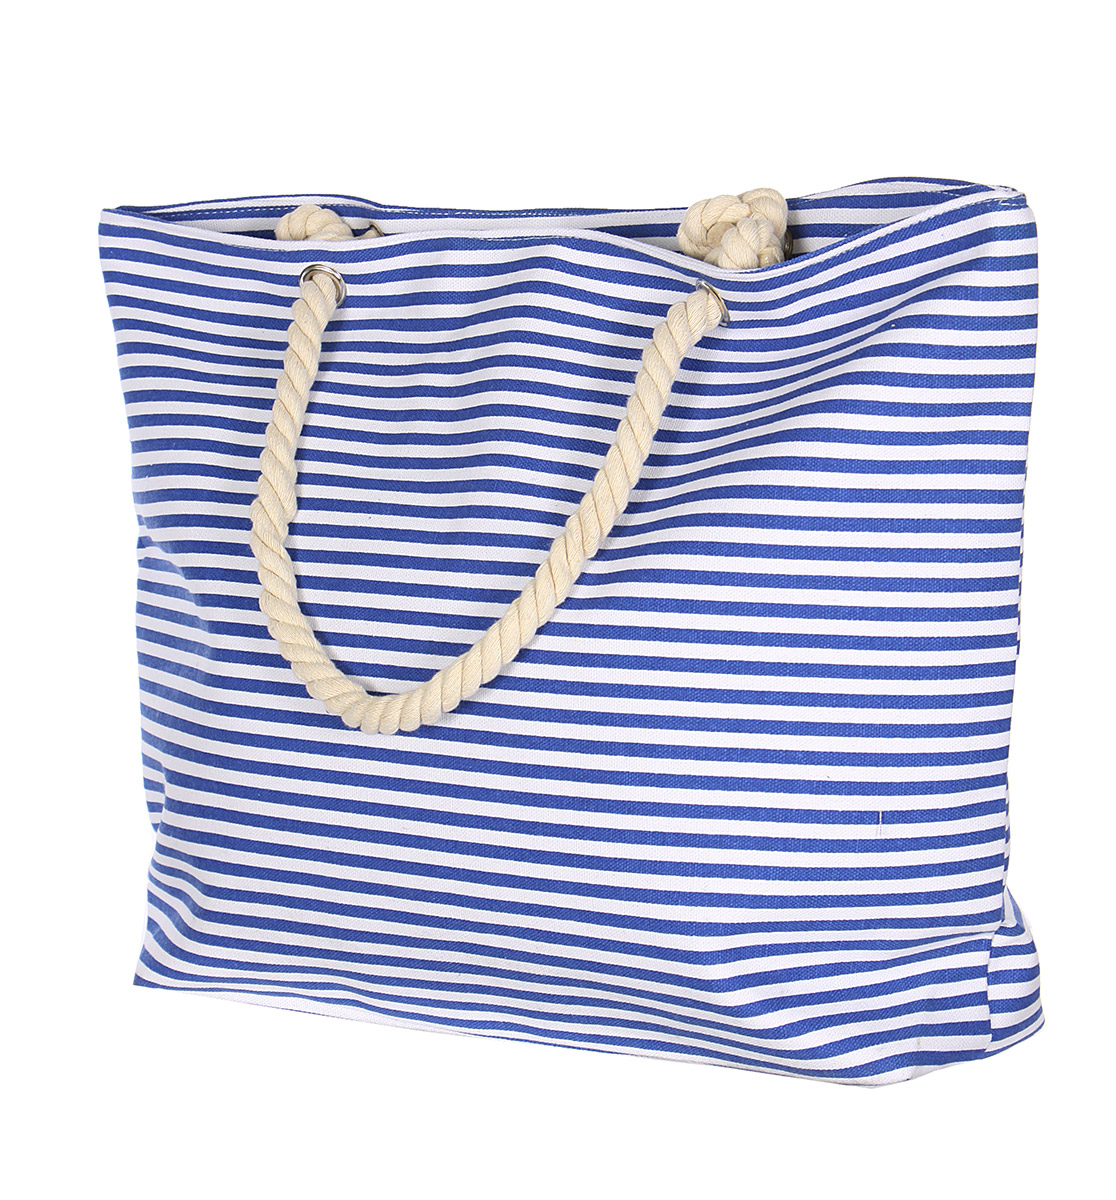 ''Cotton blend pinstripe BEACH BAG(20 x 5.5 x 15'''')''